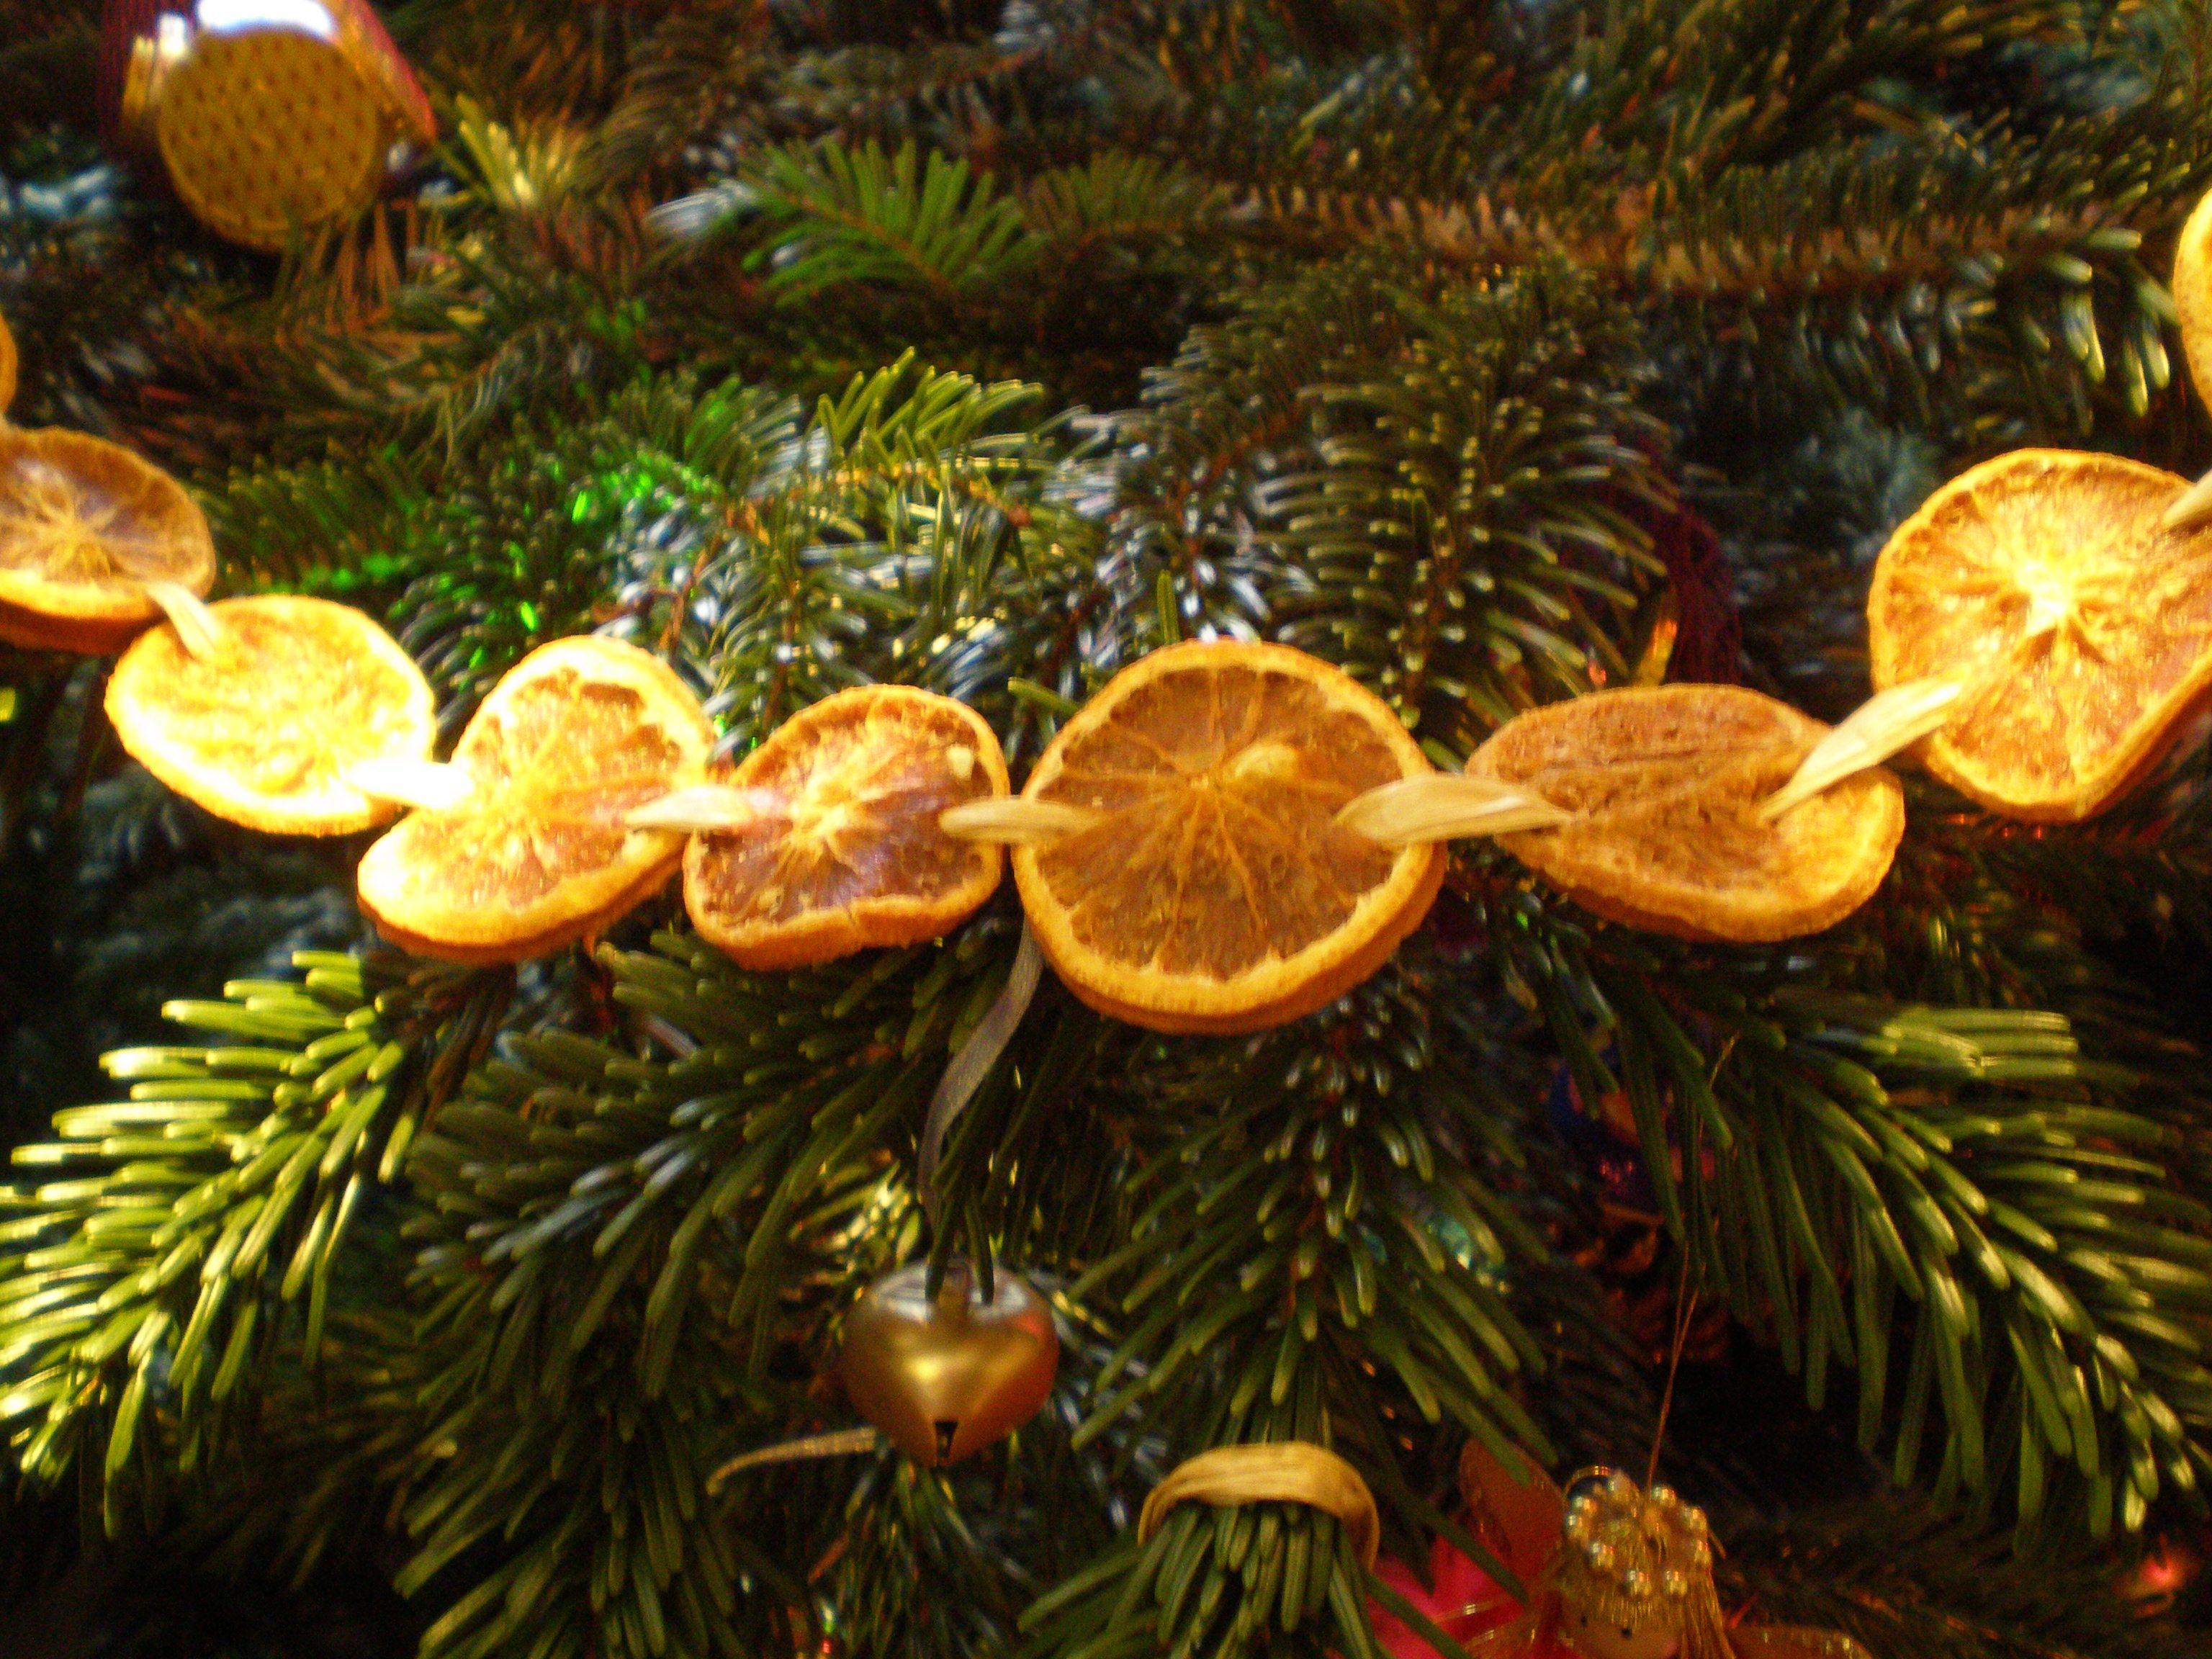 Idea For A Natural Christmas Garland Thread Some Dried Orange